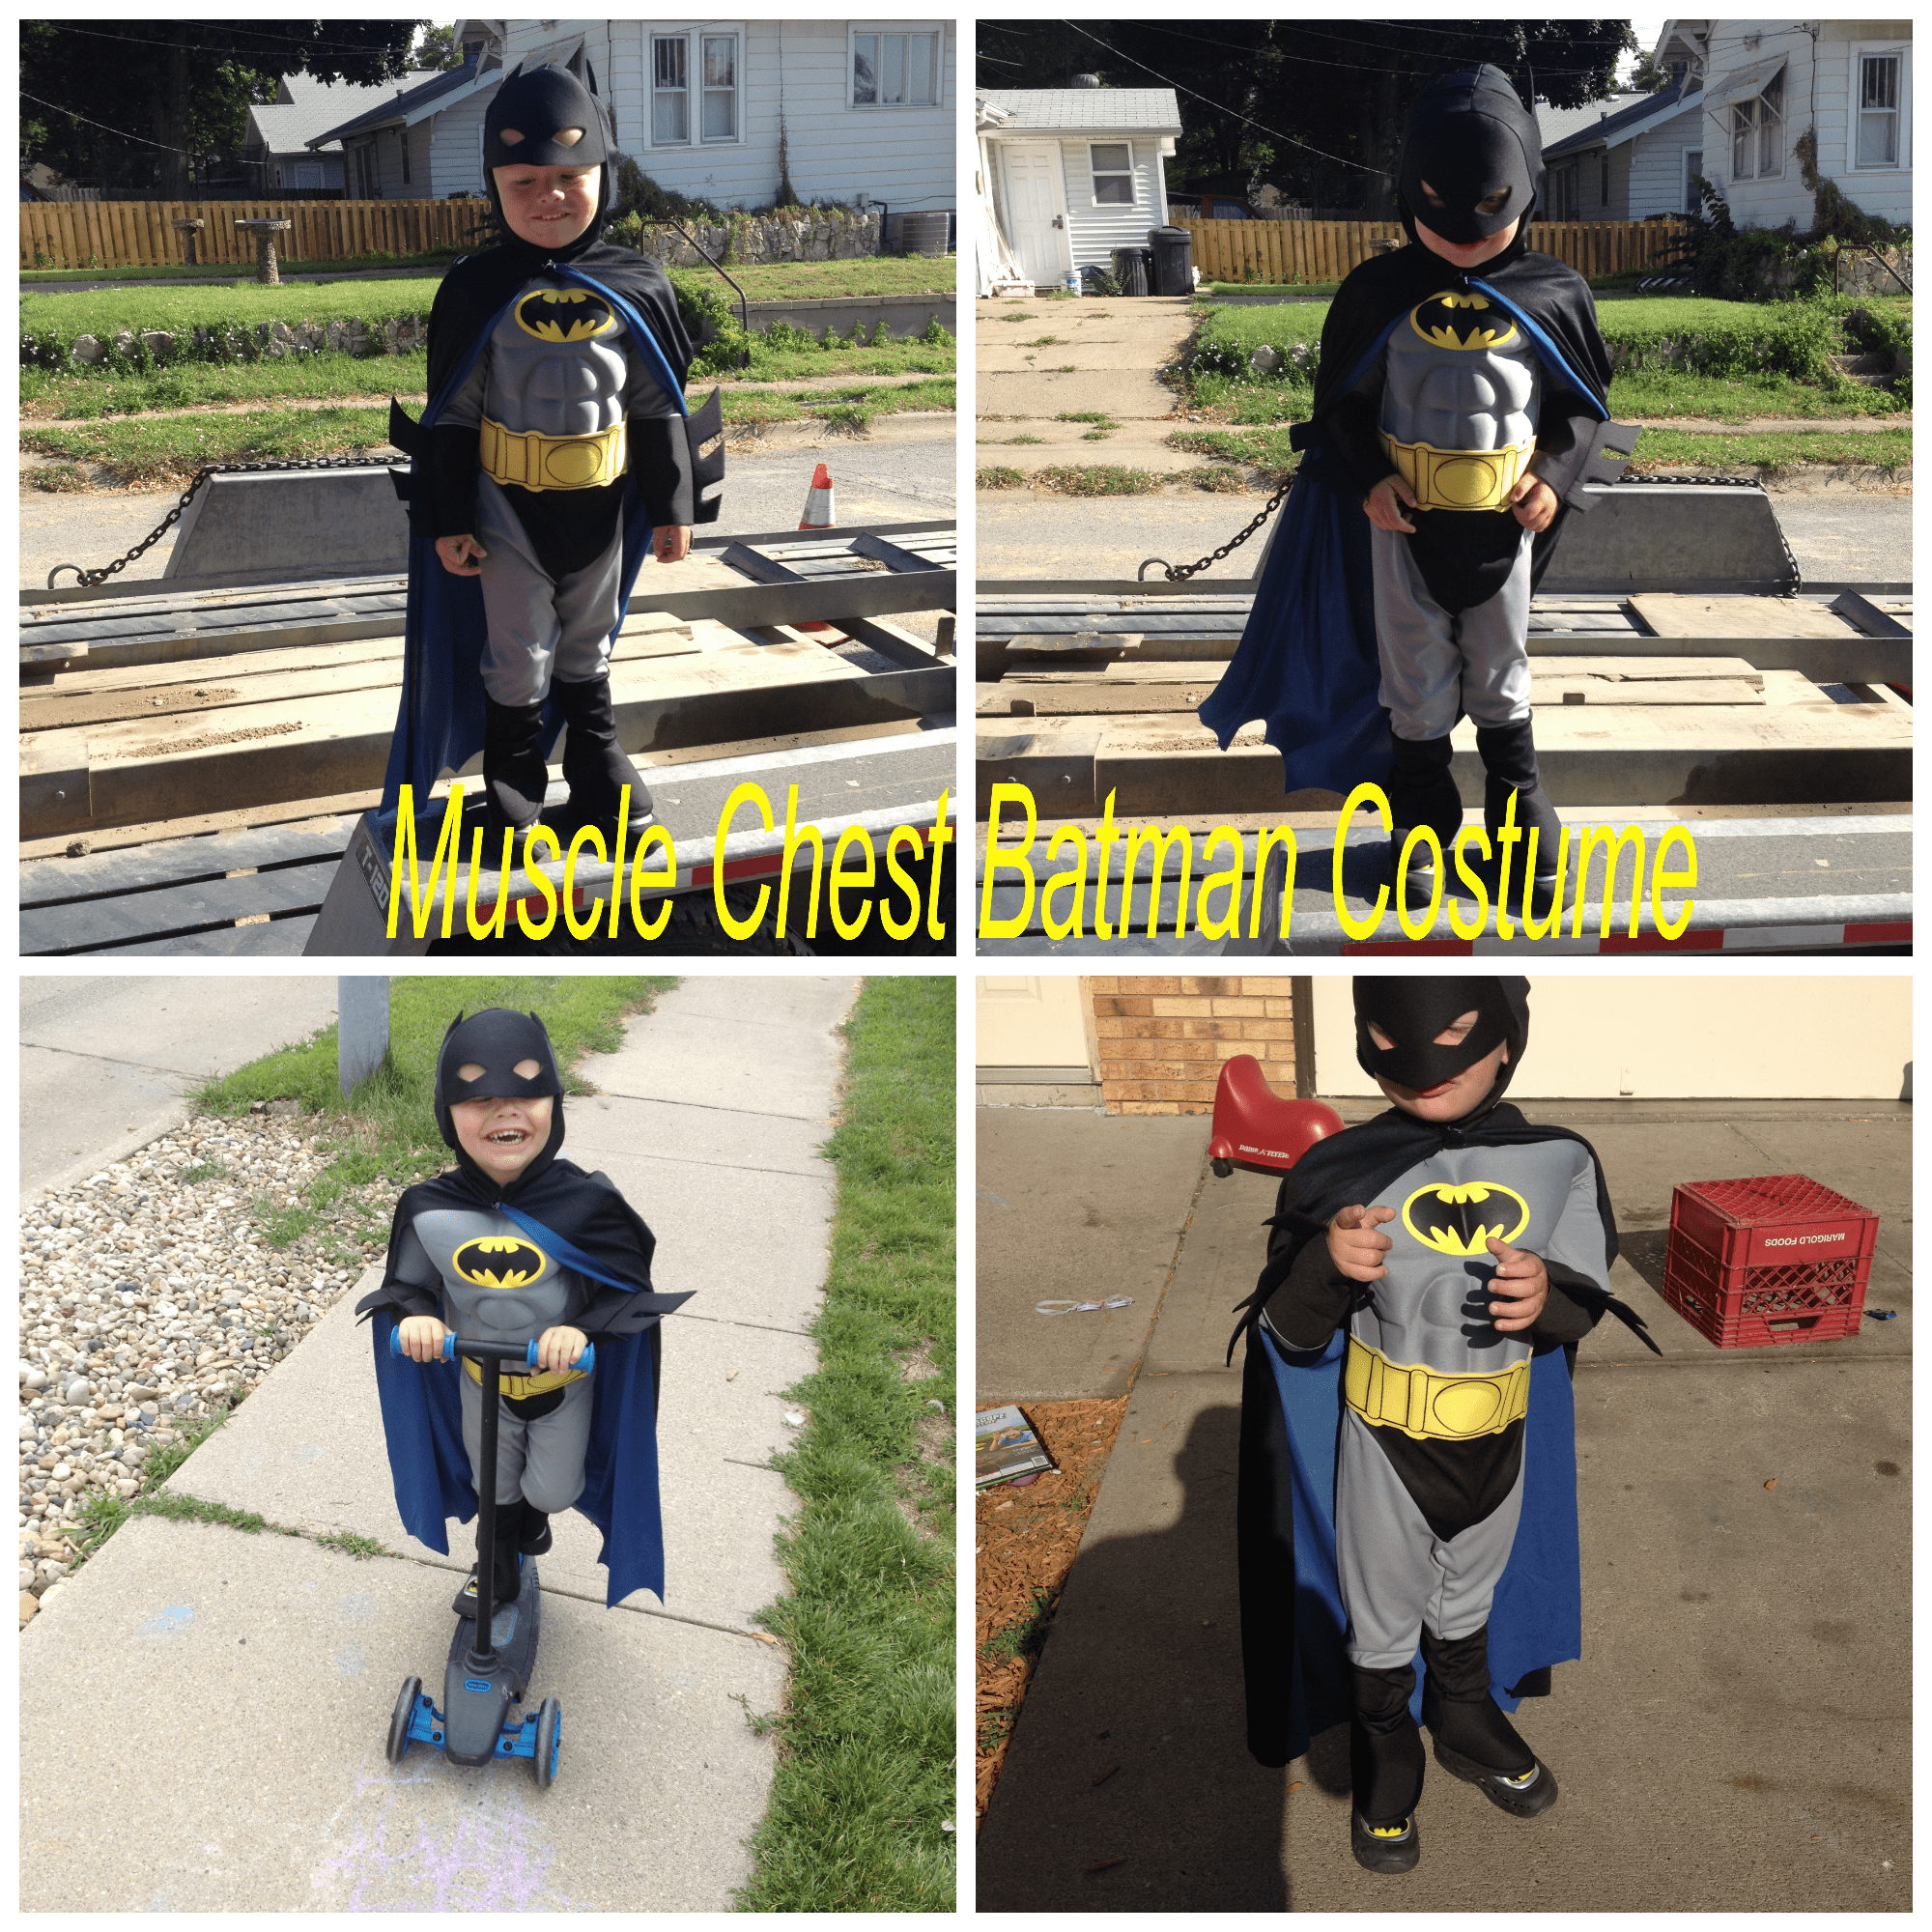 Batman Costume Review